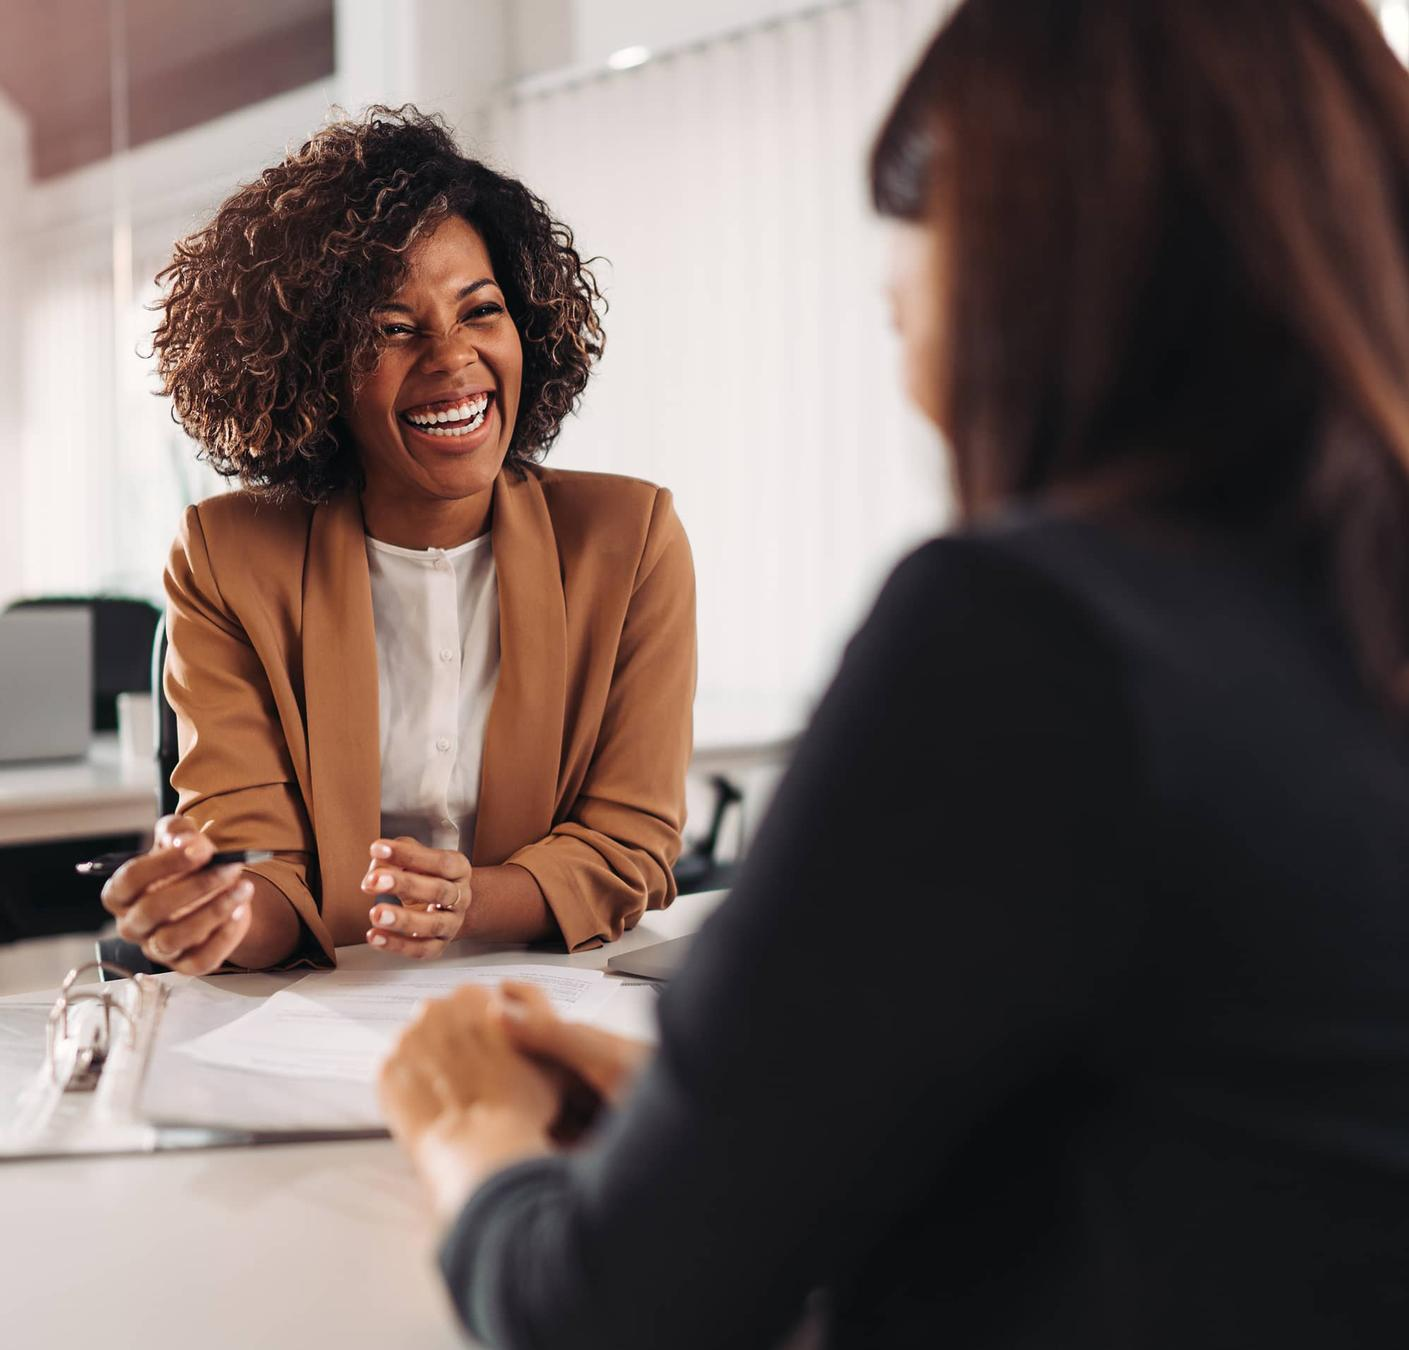 Woman with new hire smiling